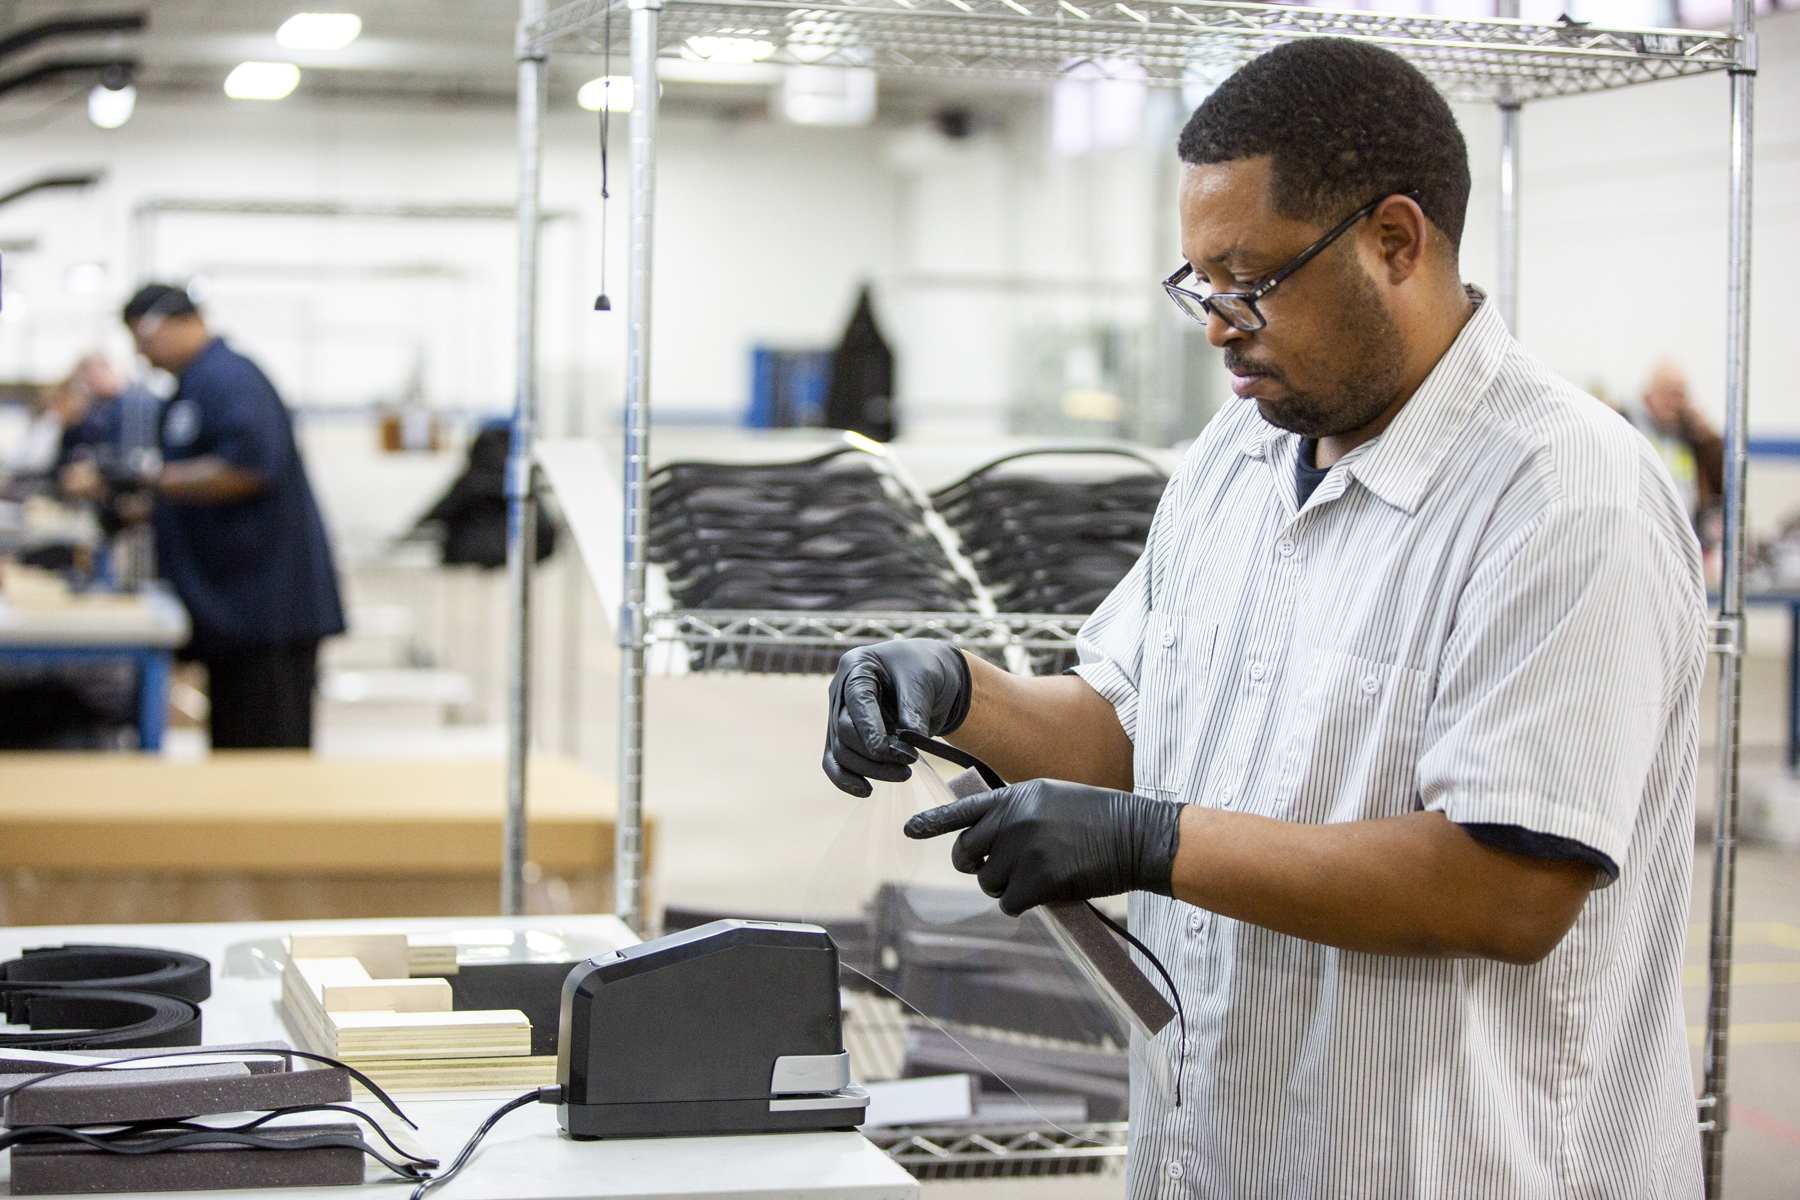 Ford factory operators and assemblers assemble medical face shields